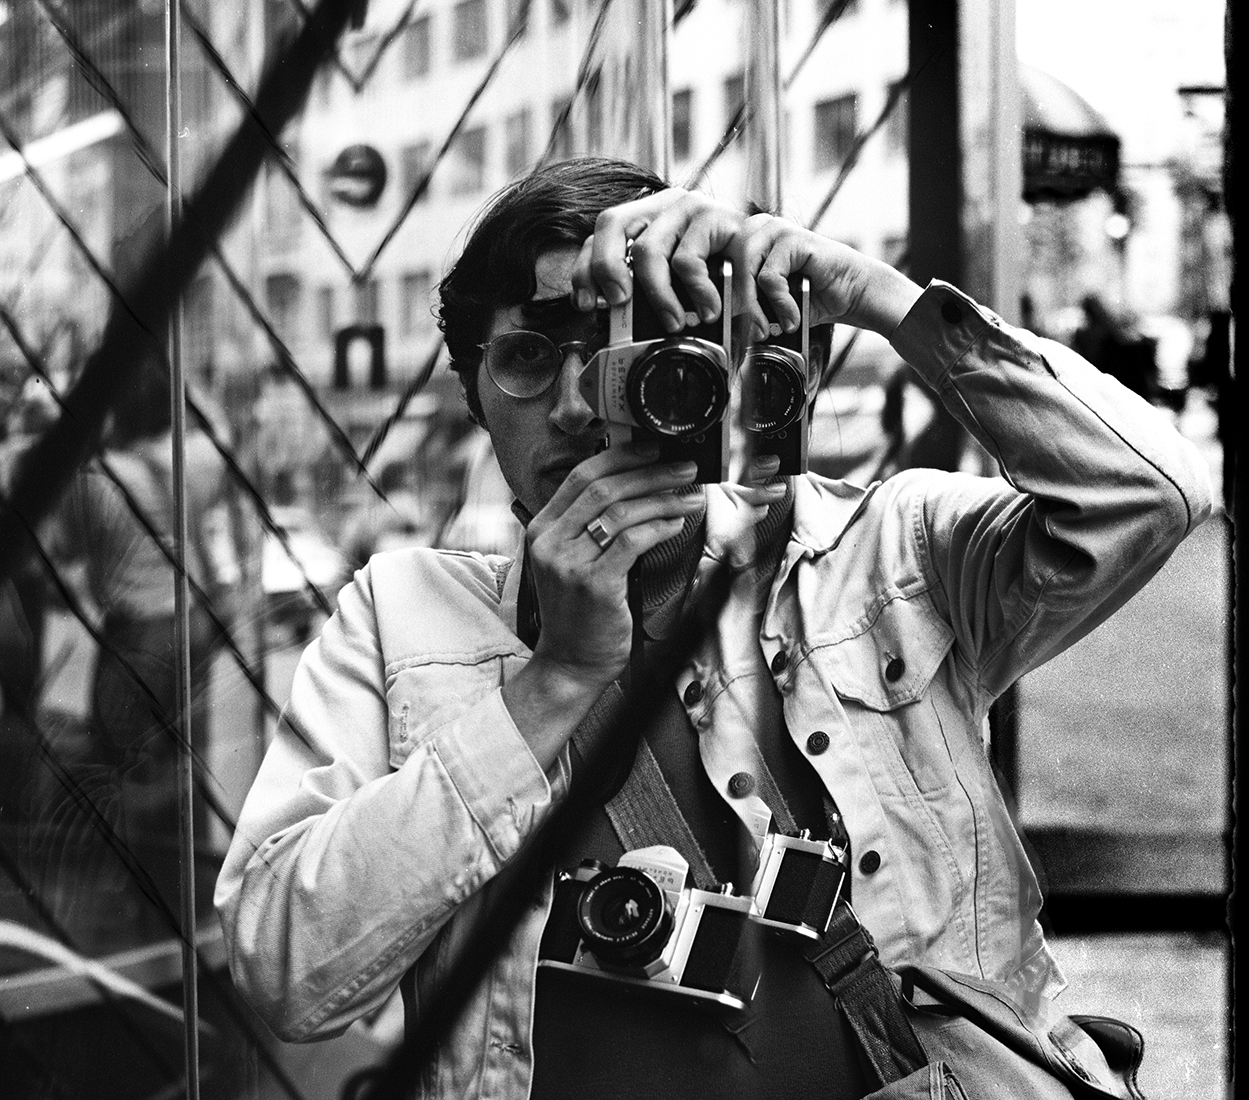 Barry Dworkin-selfie with two pentaxs